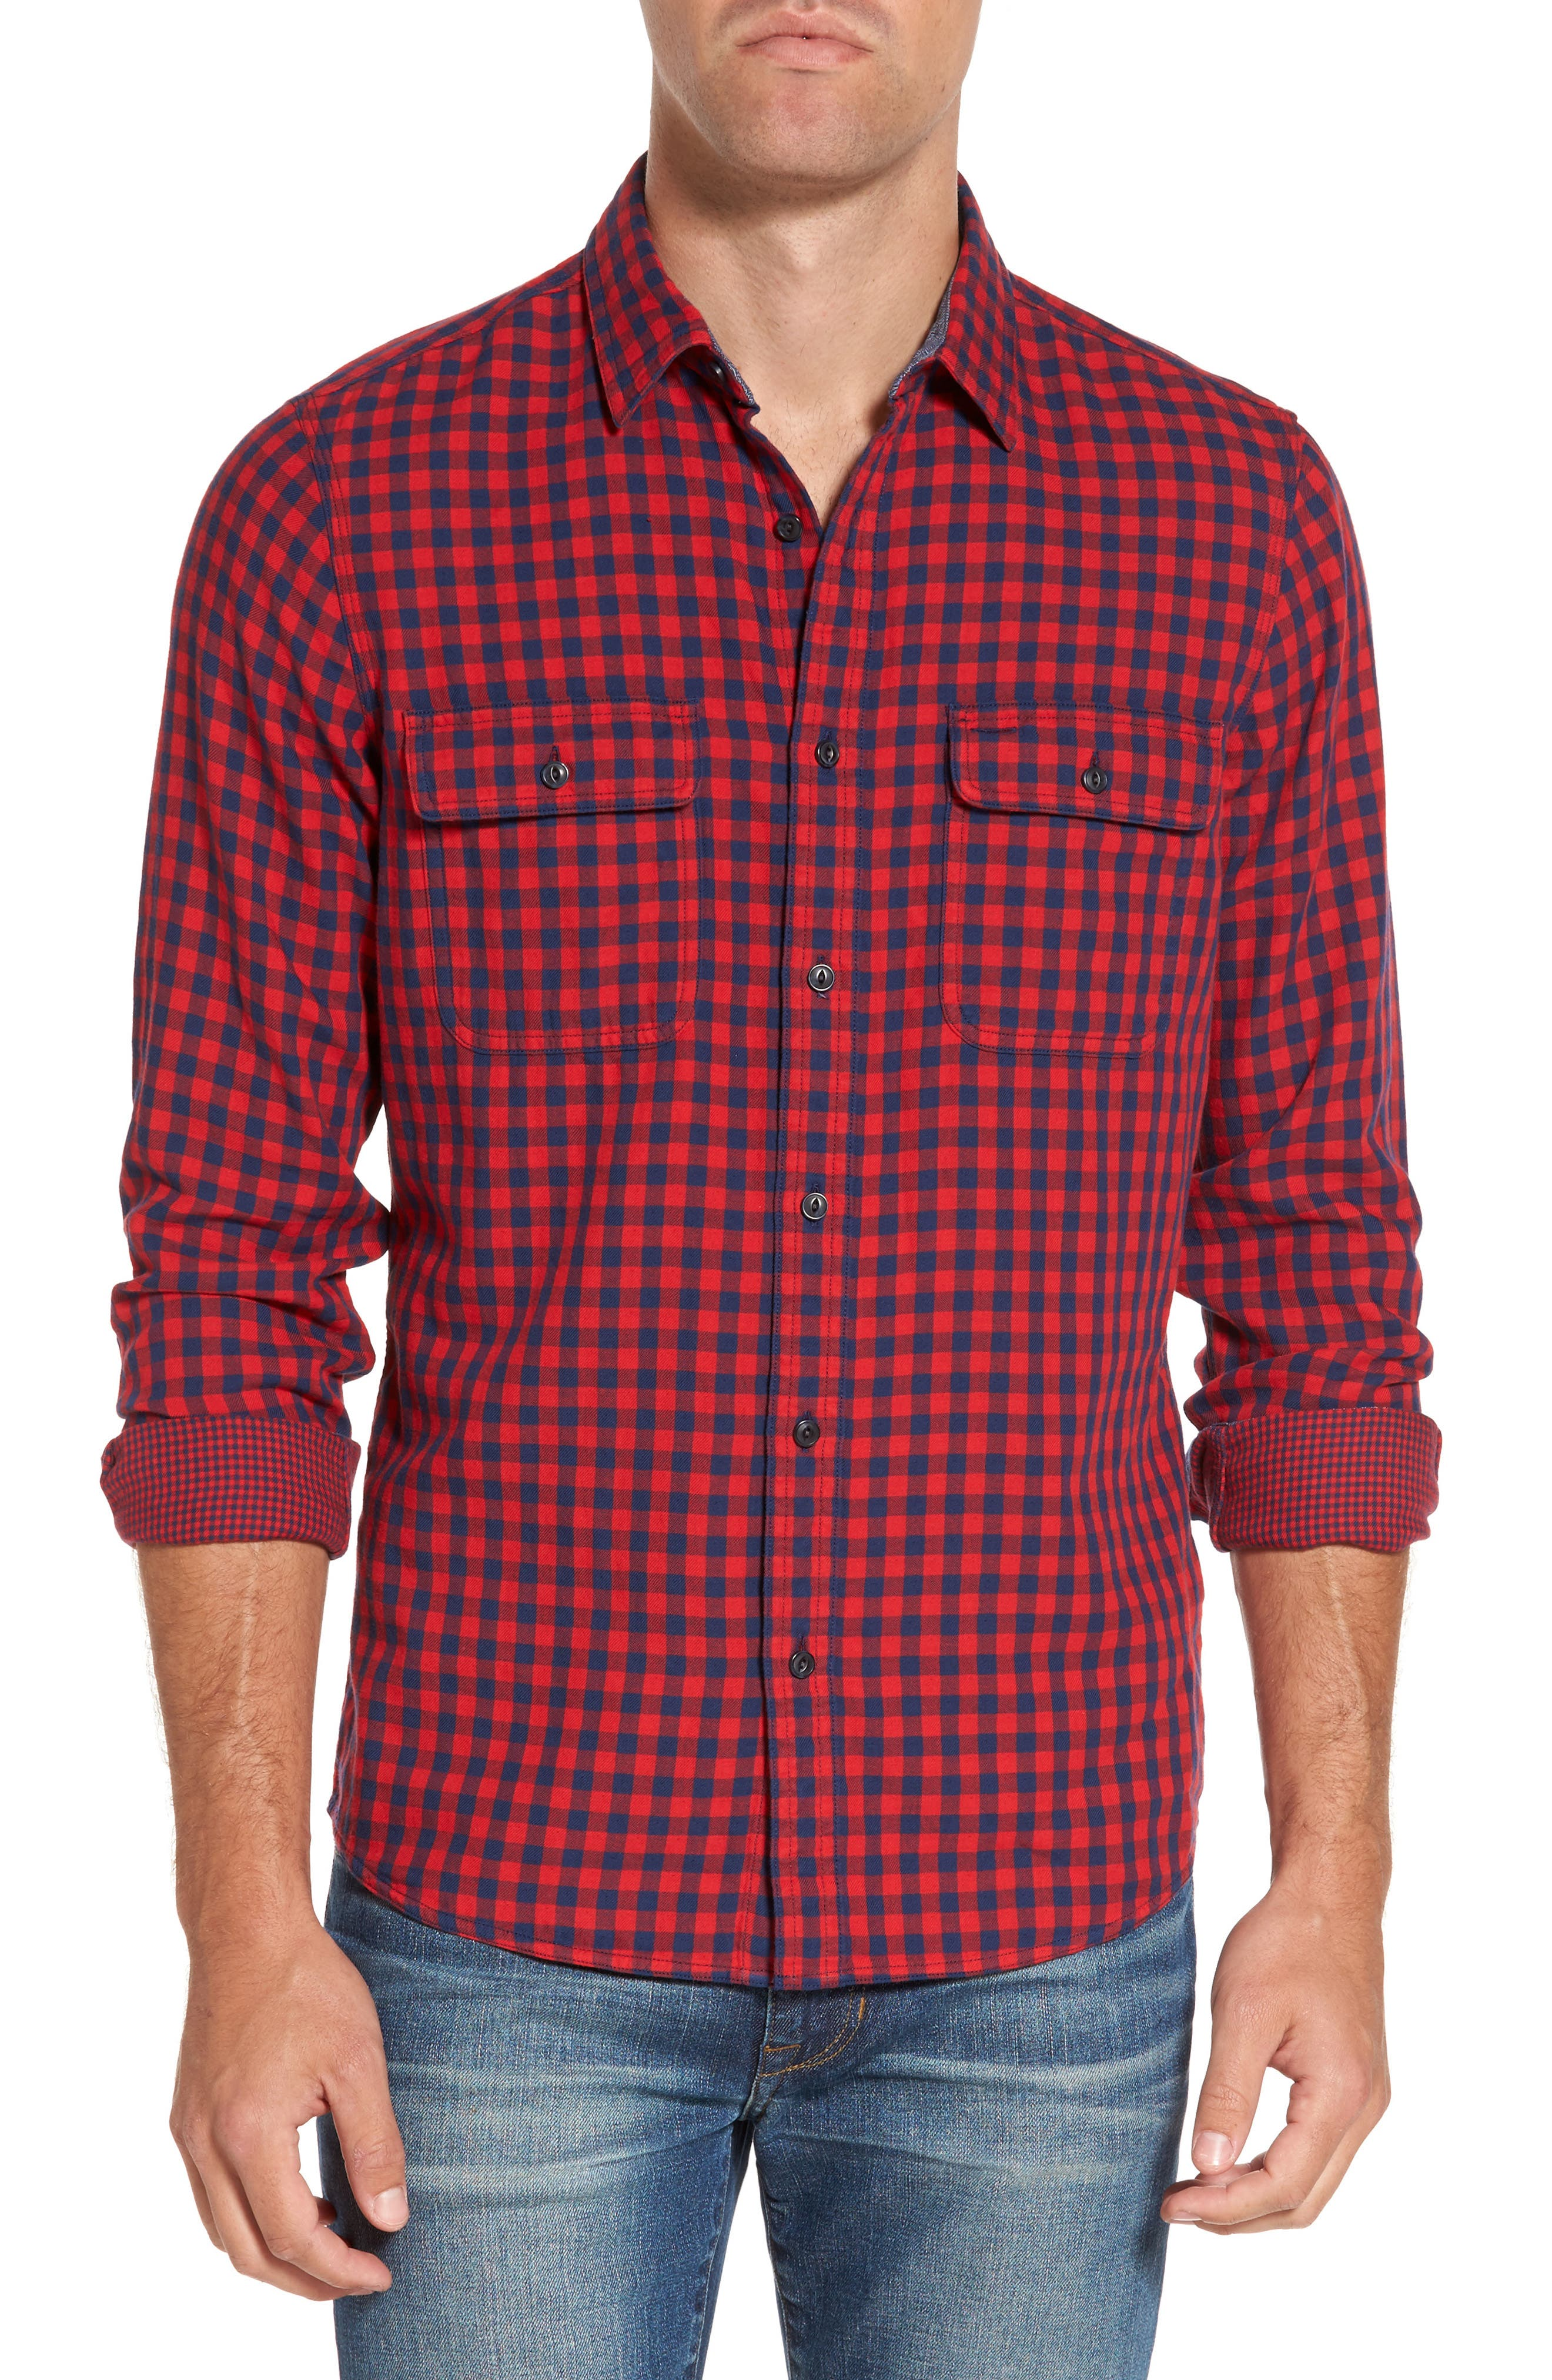 Buffalo Check Trim Fit Sport Shirt,                         Main,                         color, Red Chili Navy Gingham